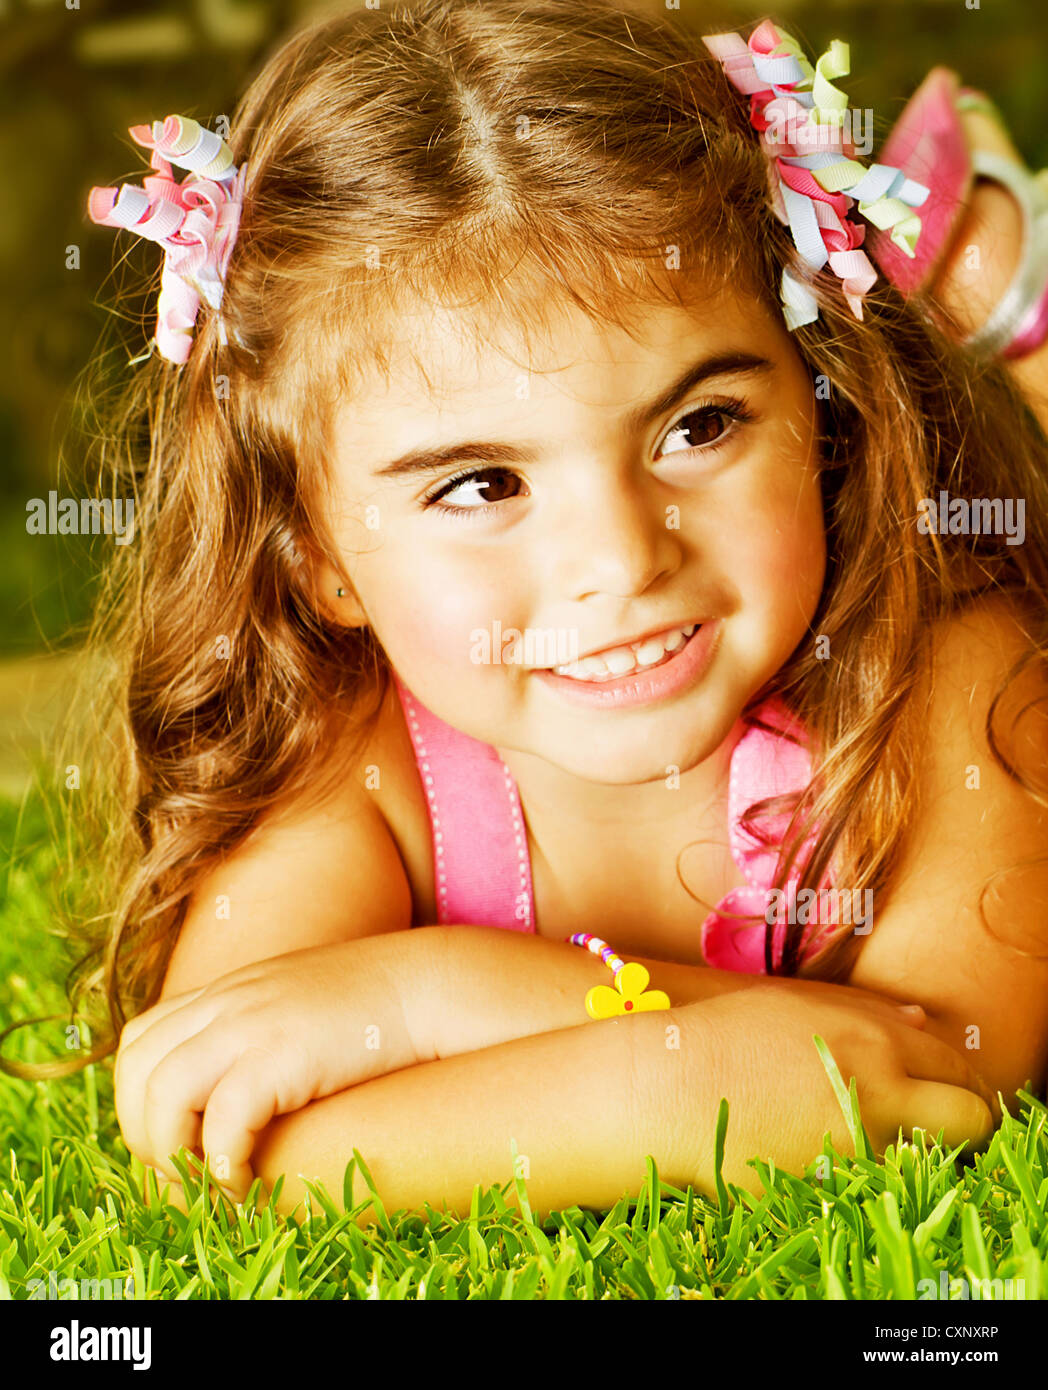 photo of cute little girl lying down fresh green grass, adorable